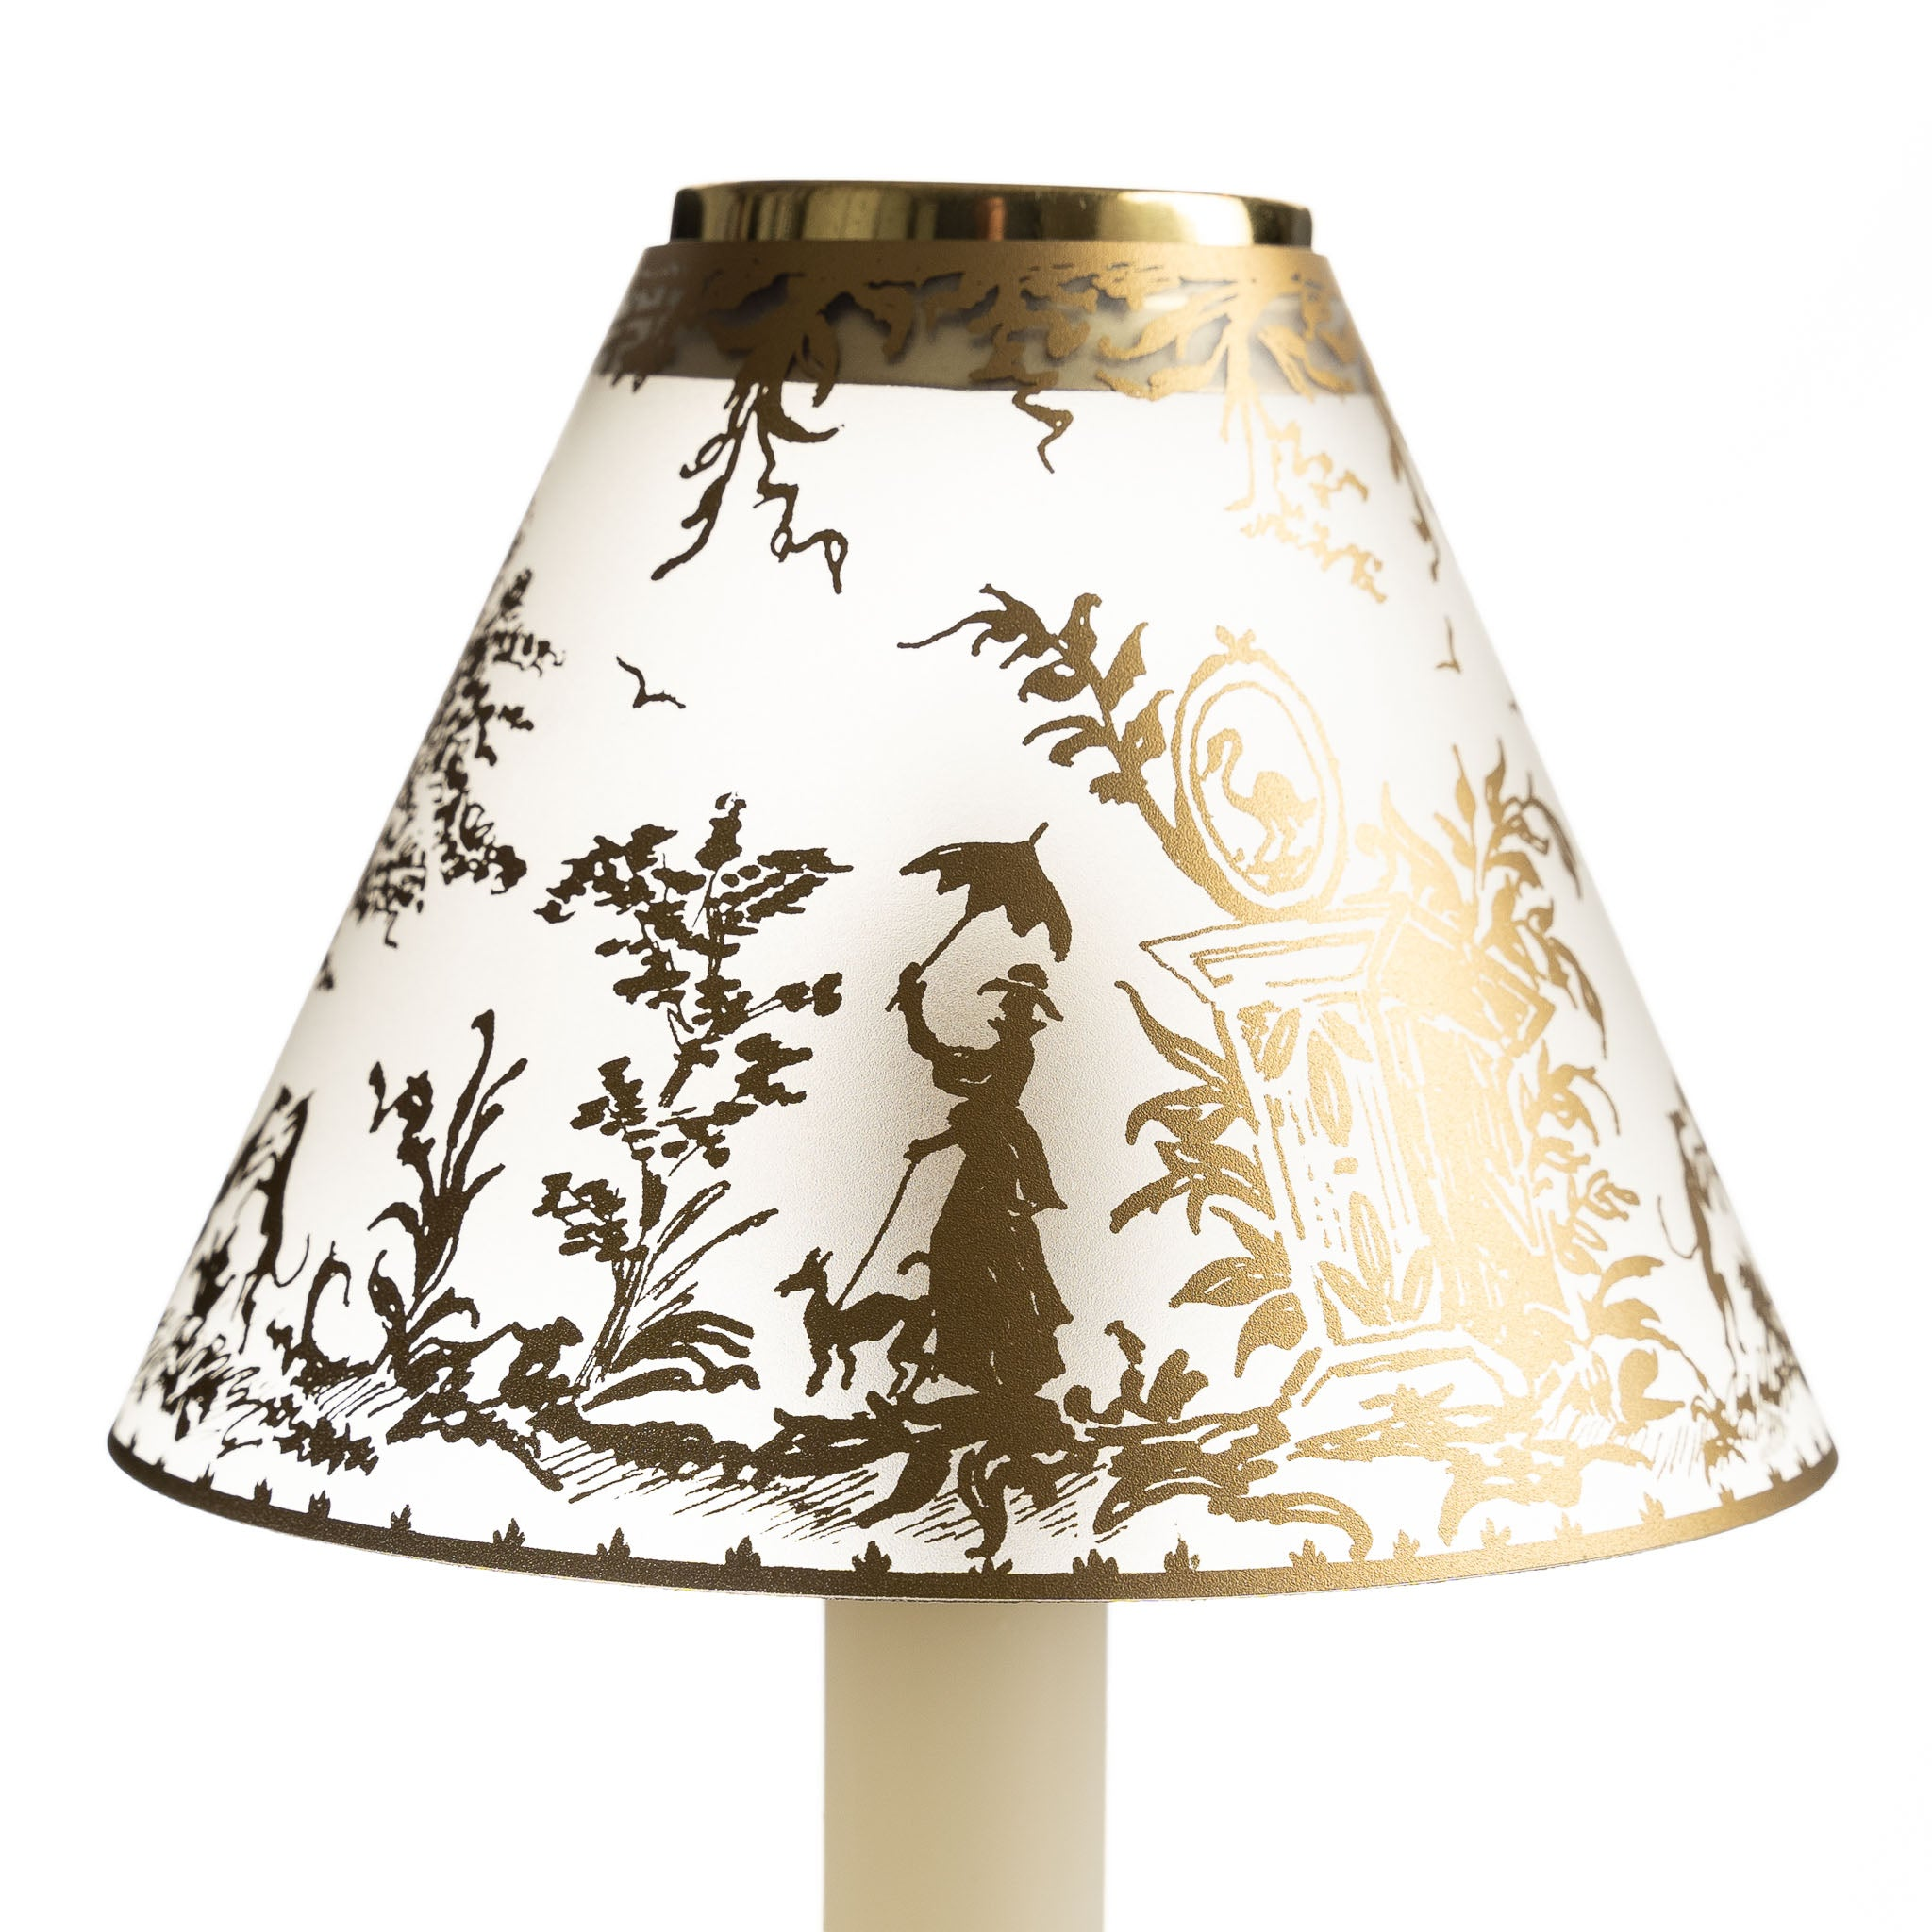 Translucent Candle Shade - Gold 18th Century | Nicholas Engert Interiors